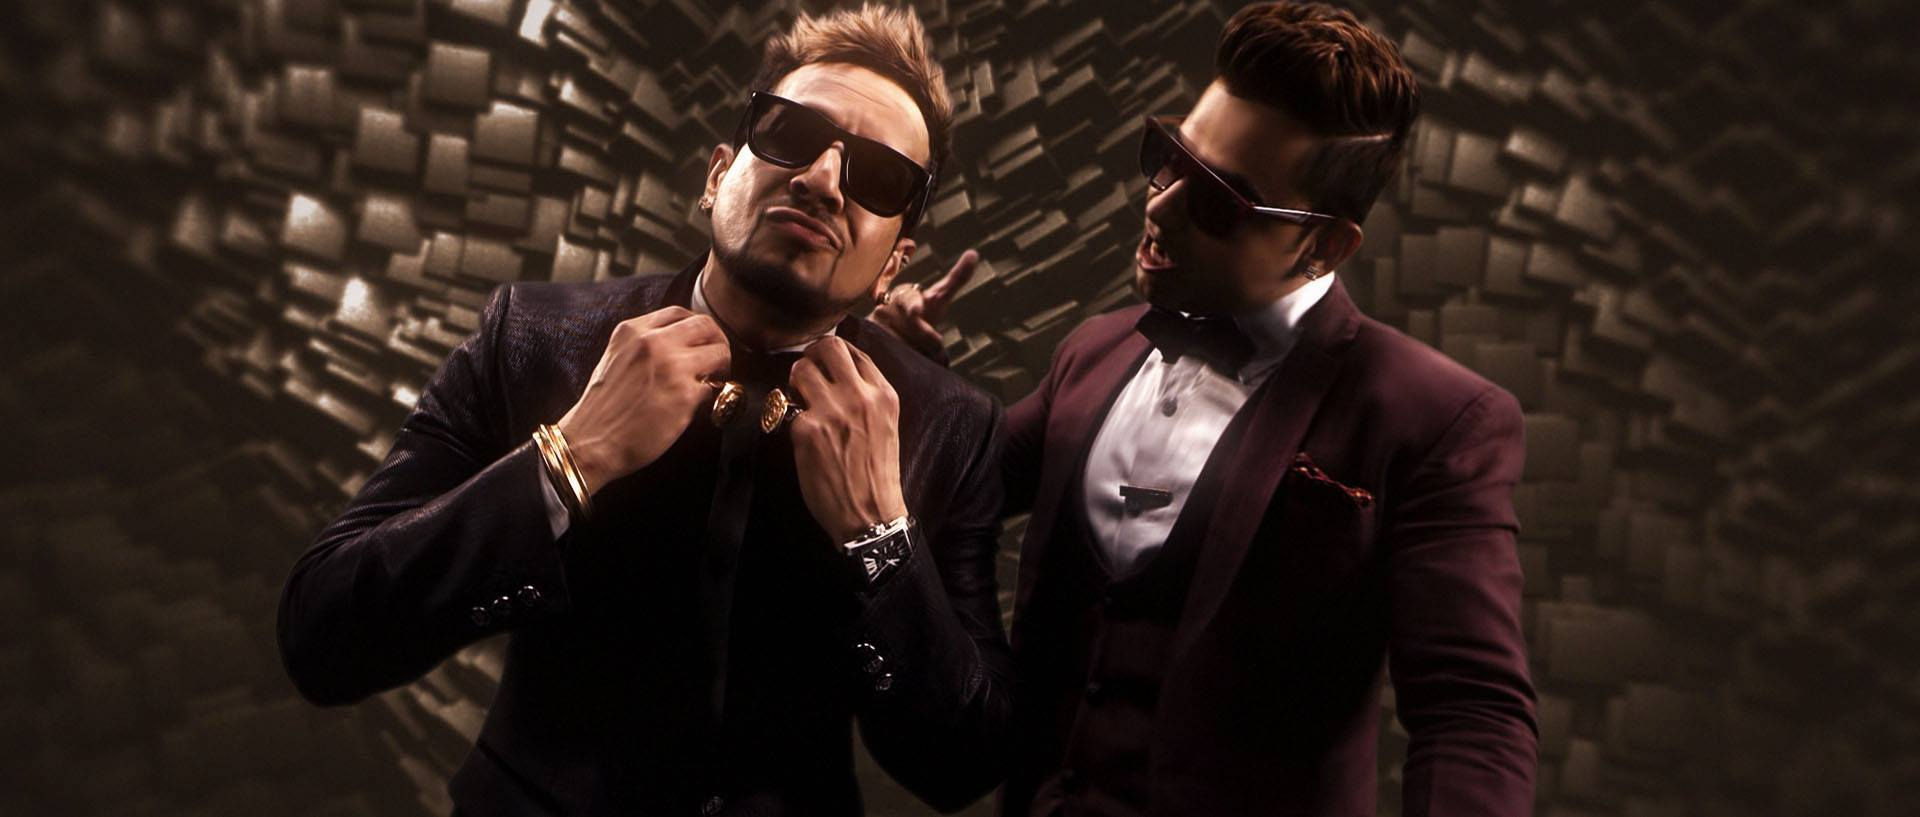 Jazzy B & Music Mg - Rise Above Hate